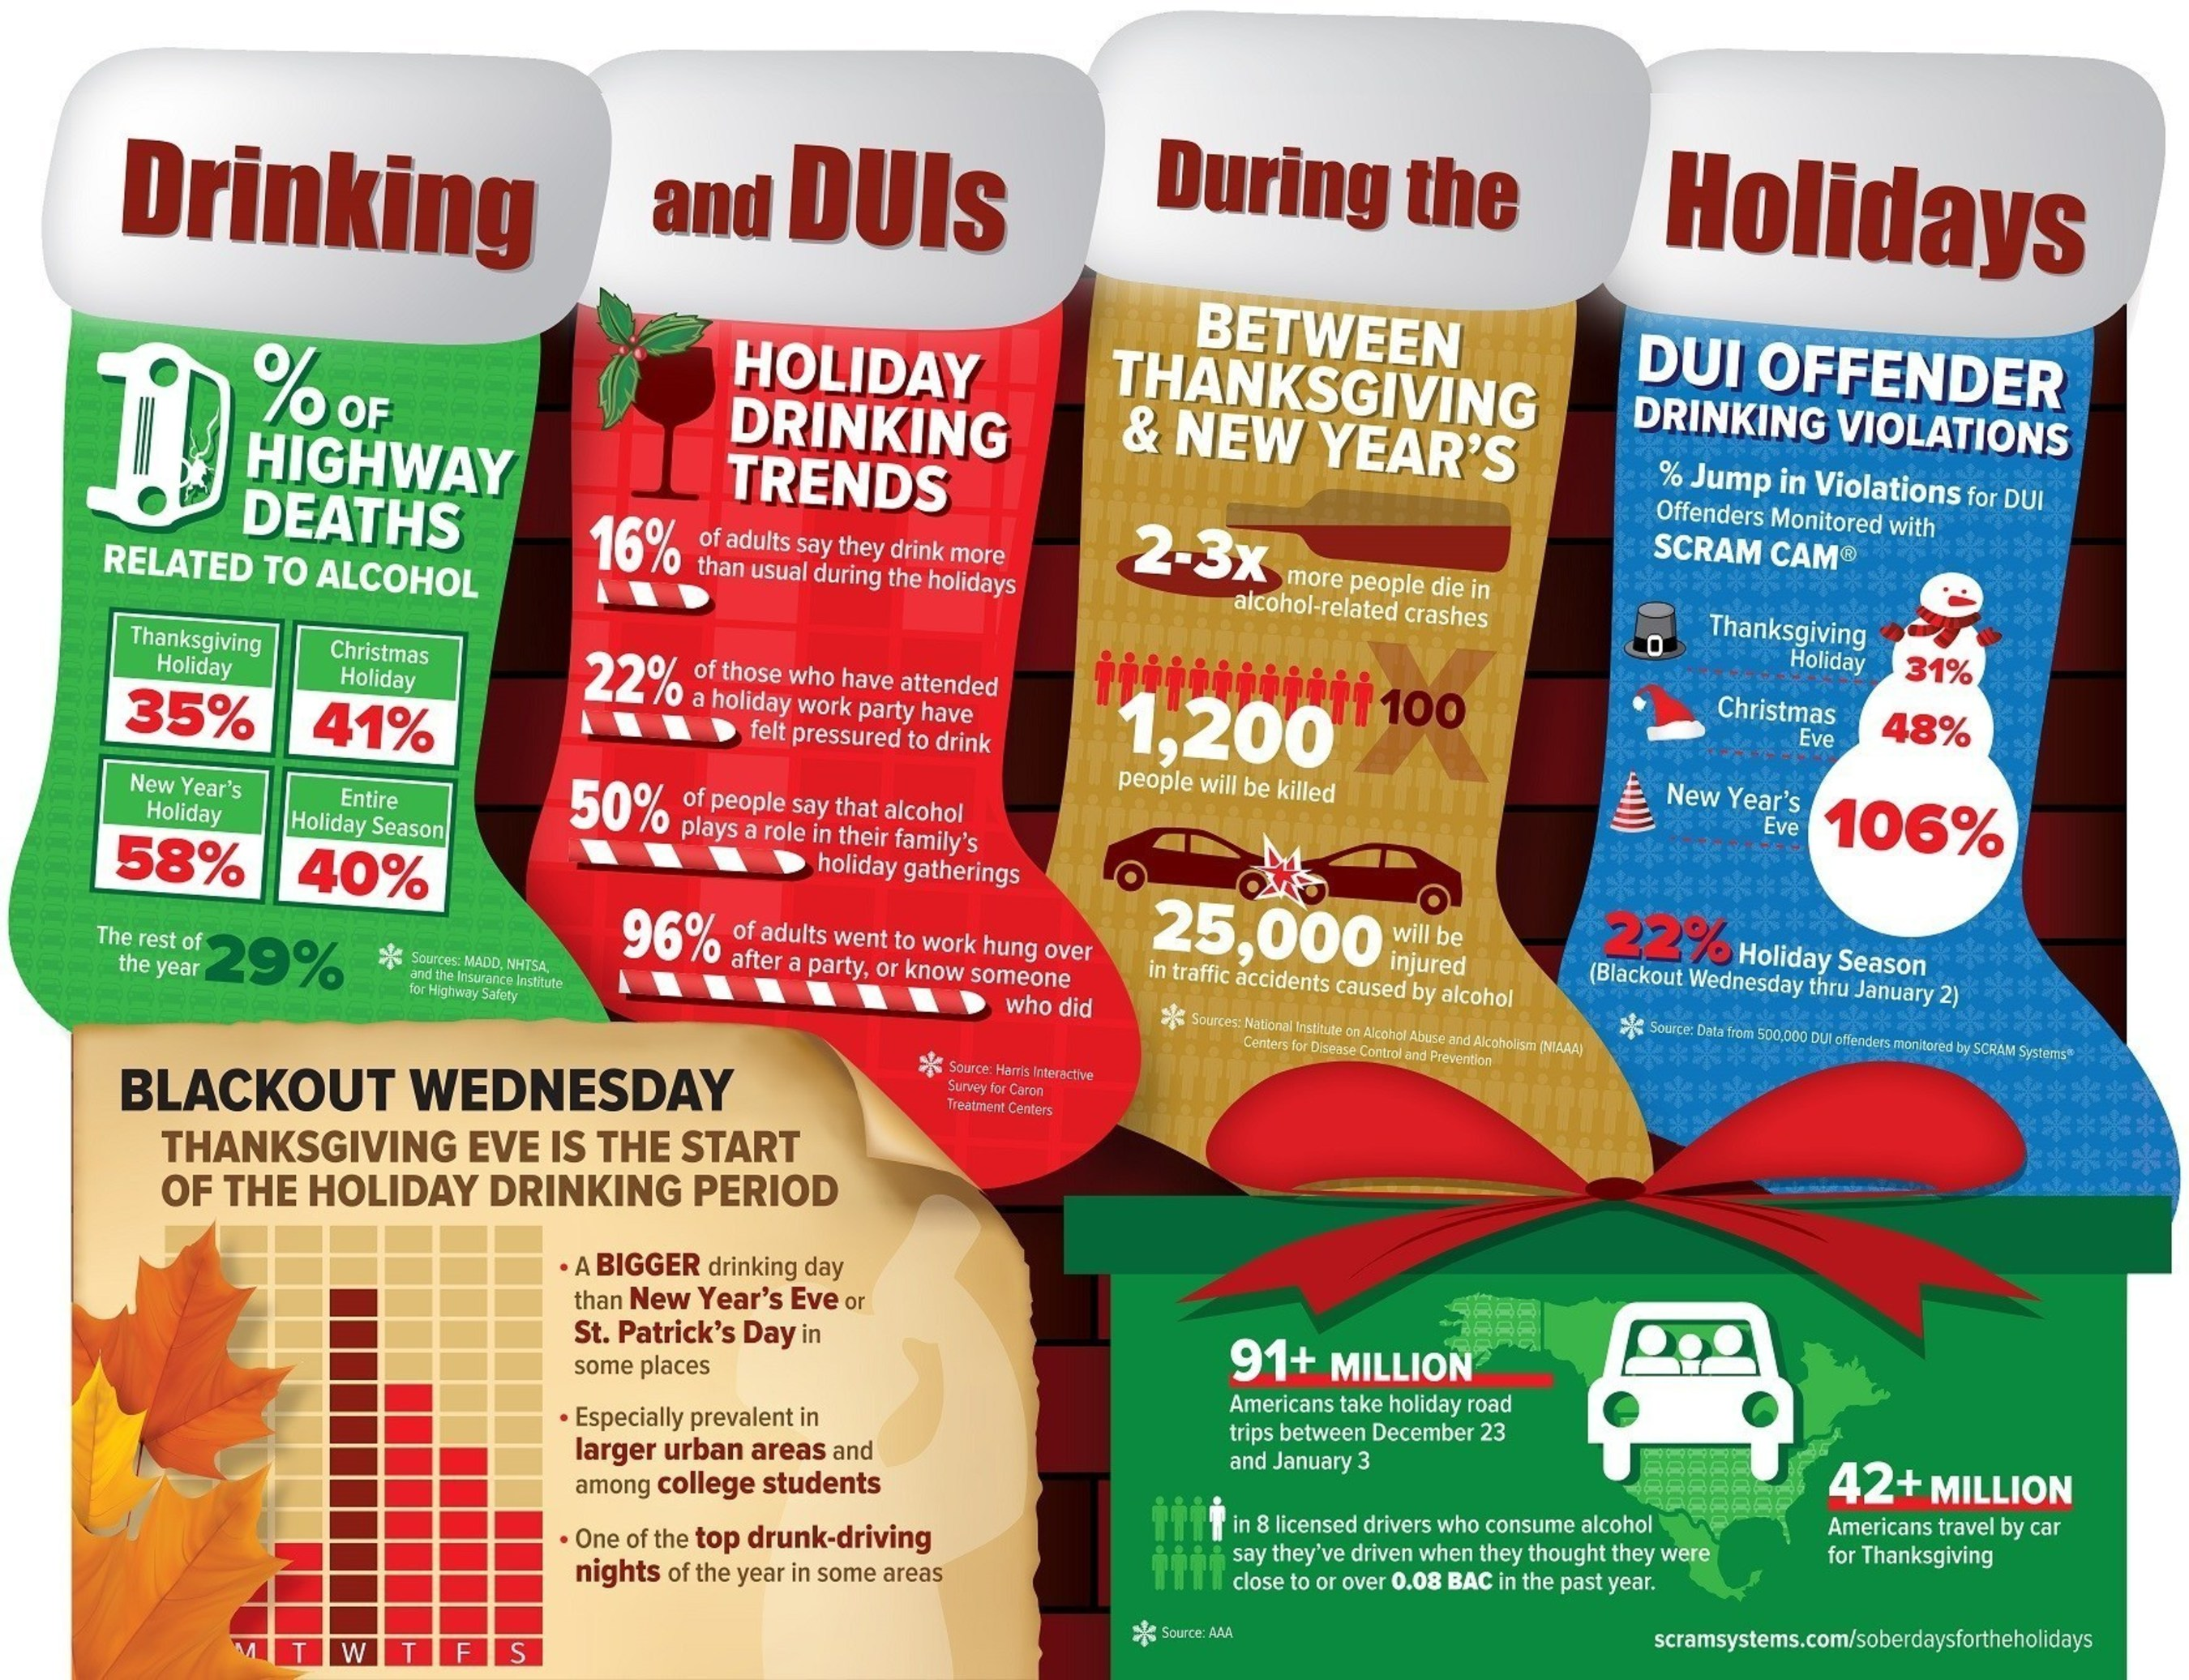 Holiday-related spikes in binge drinking and drunk driving are expected to start on Thanksgiving Eve and continue through New Year's.